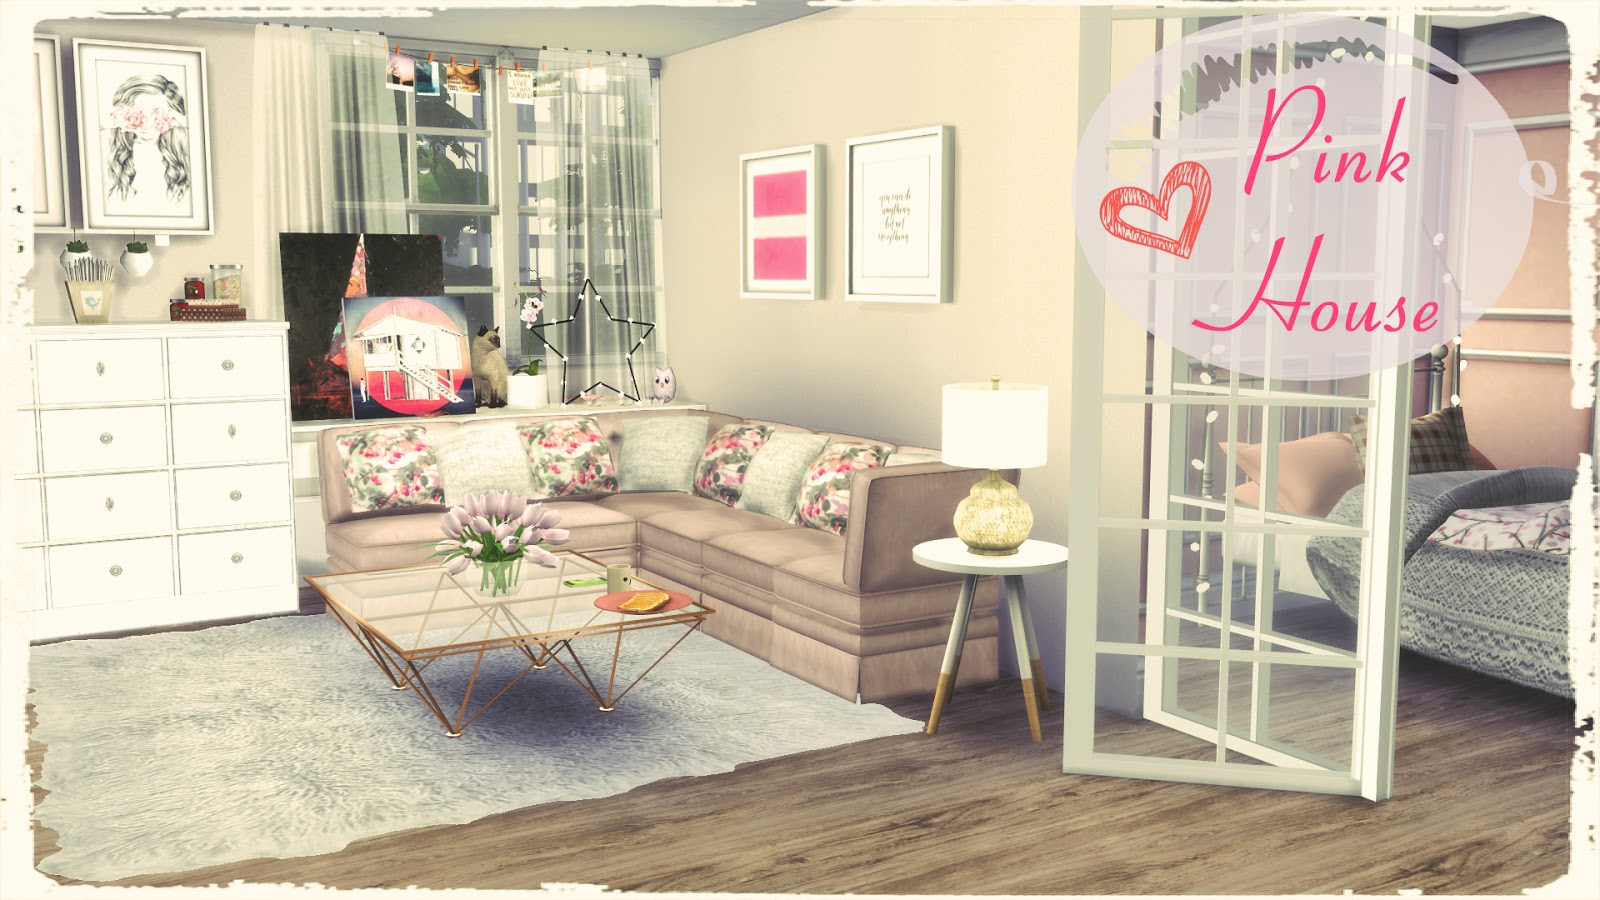 Sims 4 Pink House Dinha